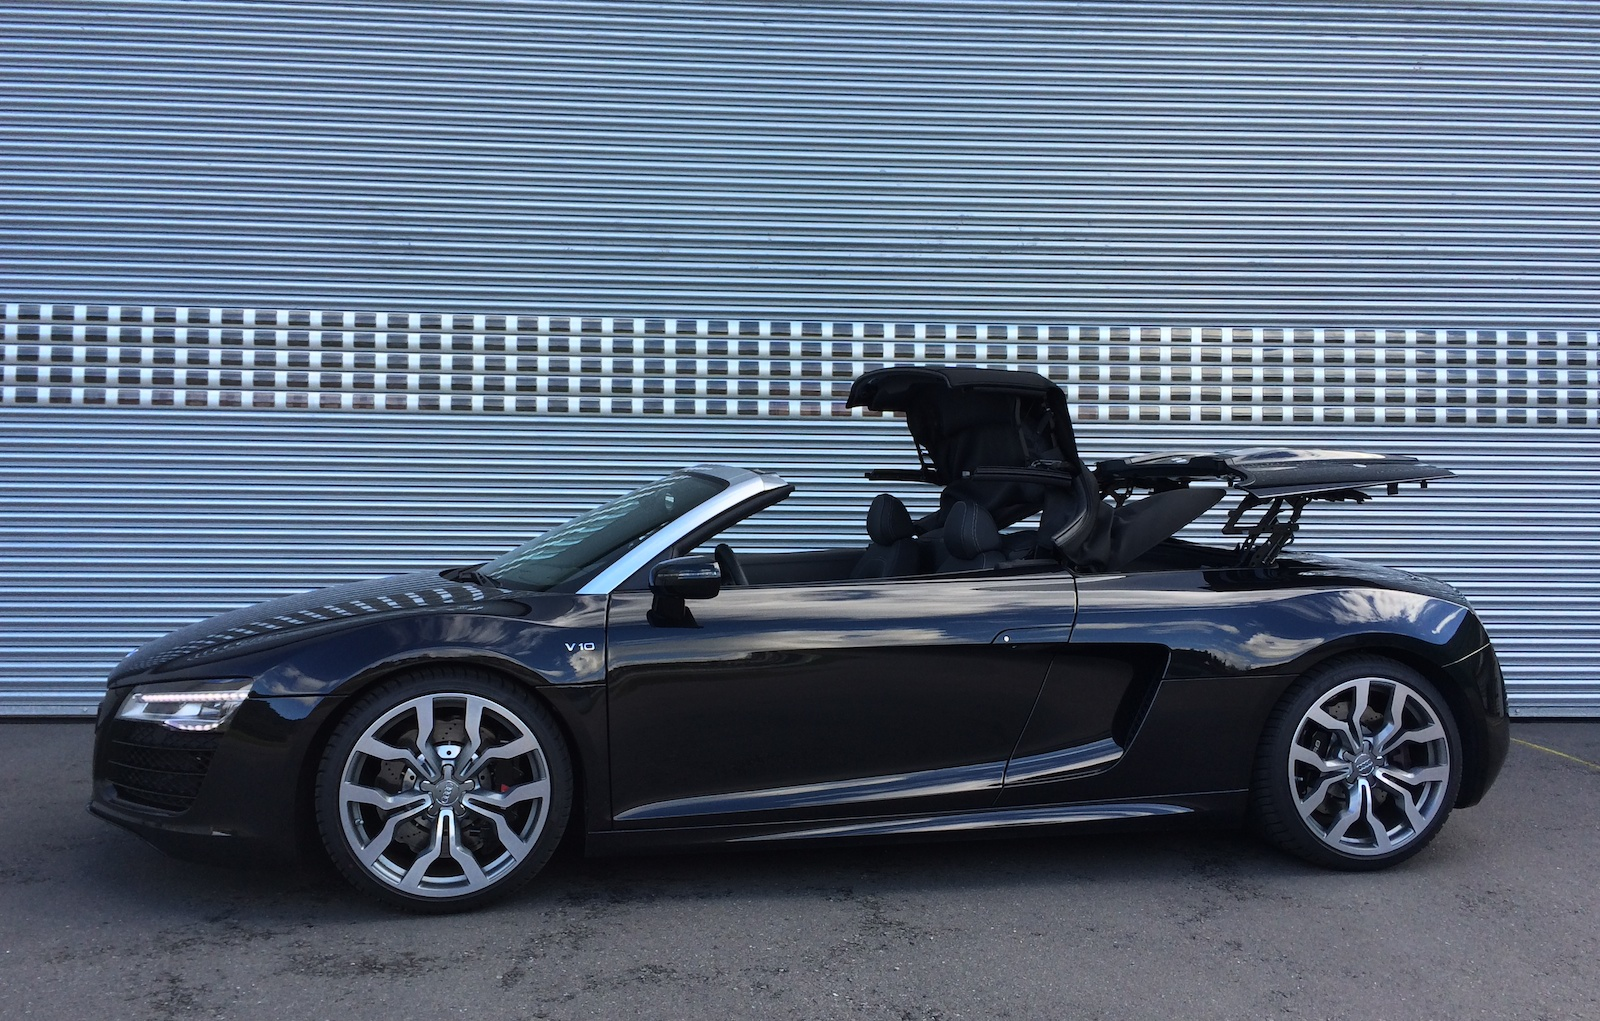 smarttop for audi r8 spyder mods4cars blogmods4cars blog. Black Bedroom Furniture Sets. Home Design Ideas